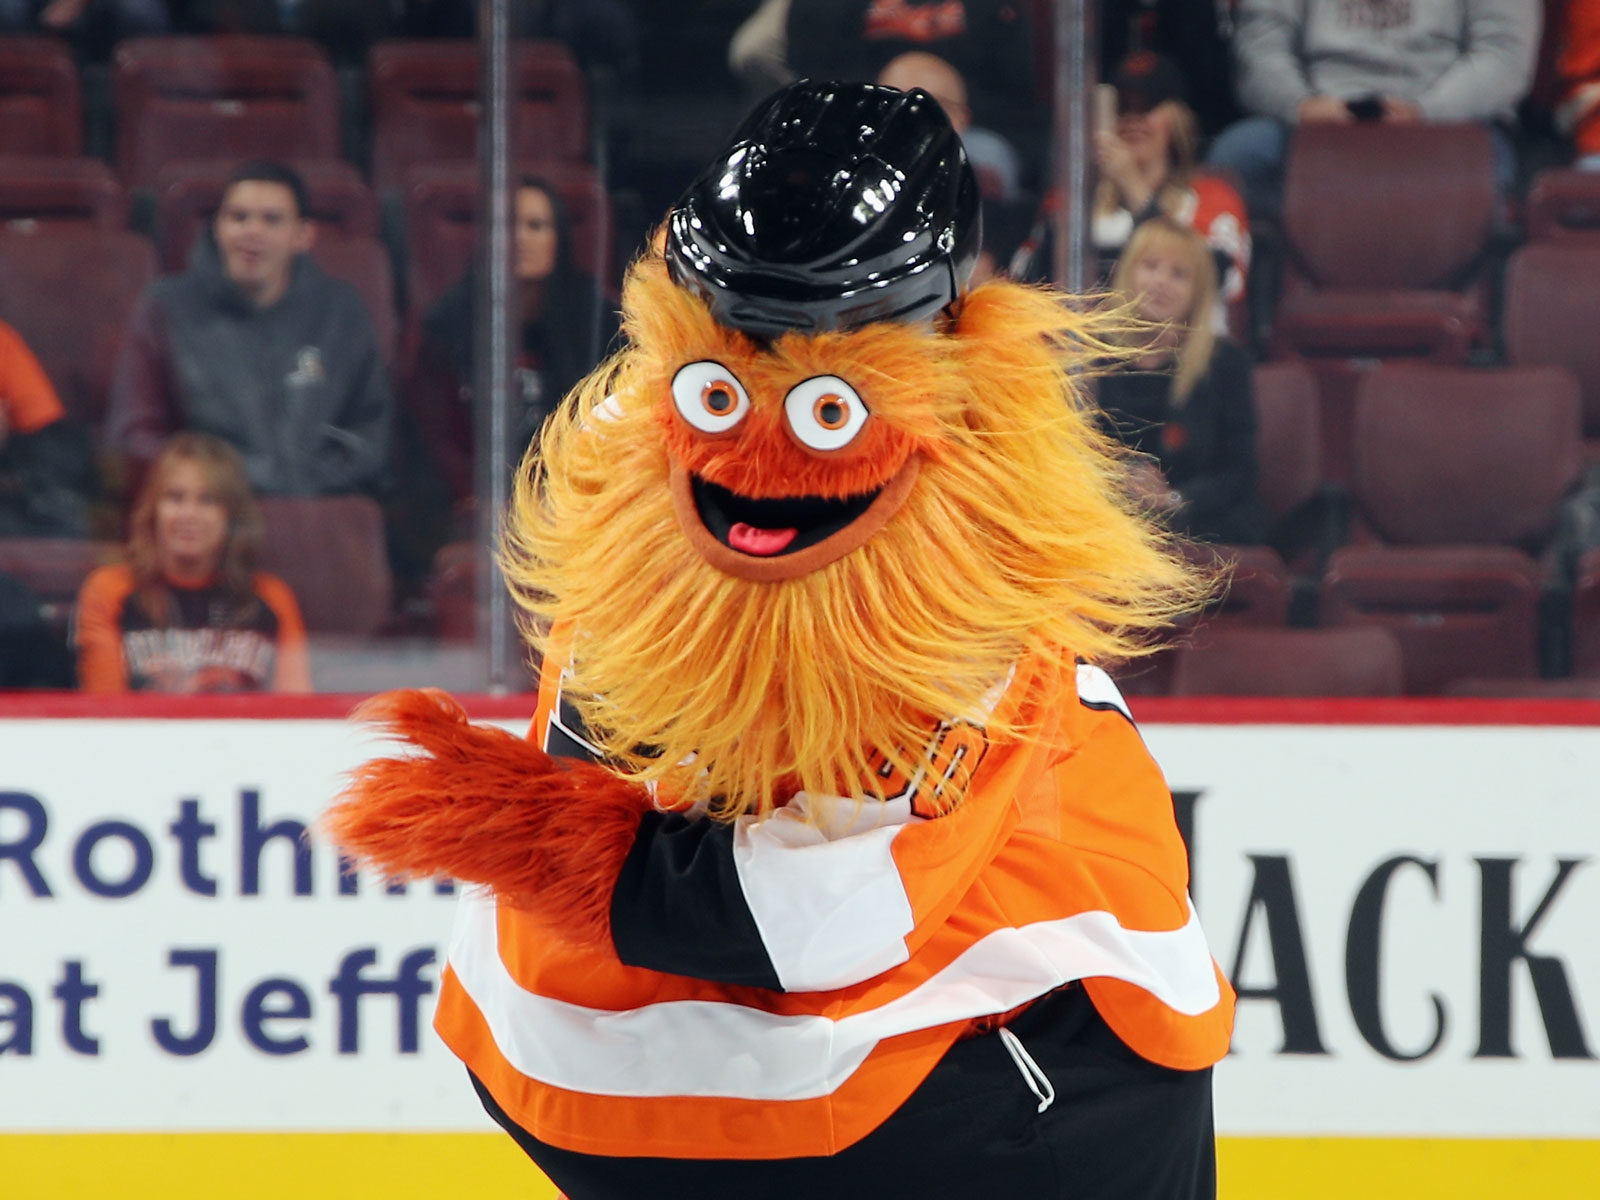 Gritty, the Googly-Eyed Philadelphia Flyers Mascot, Already Has an Aptly-Named Beer Tribute